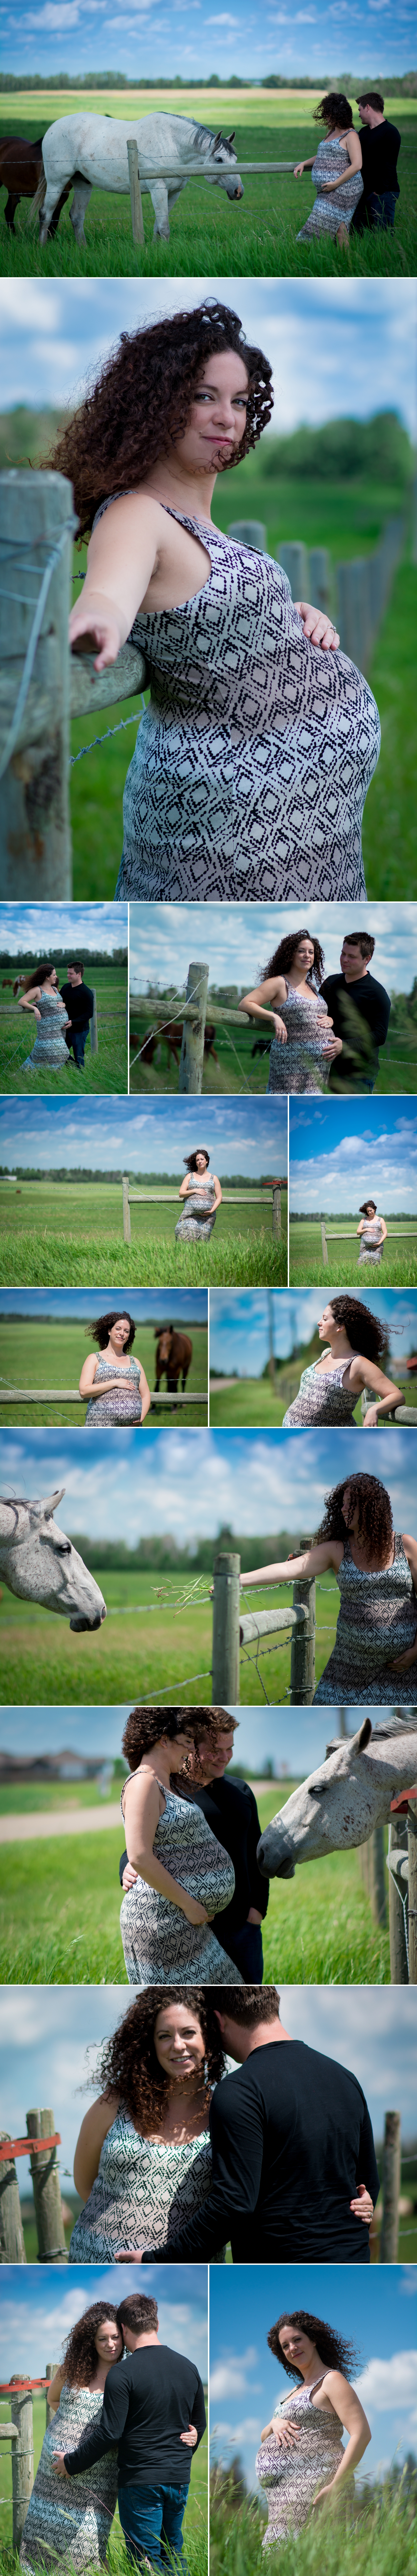 Maternity Lifestyle Photography by Friday Design + Photography from Edmonton, Alberta, Canada.